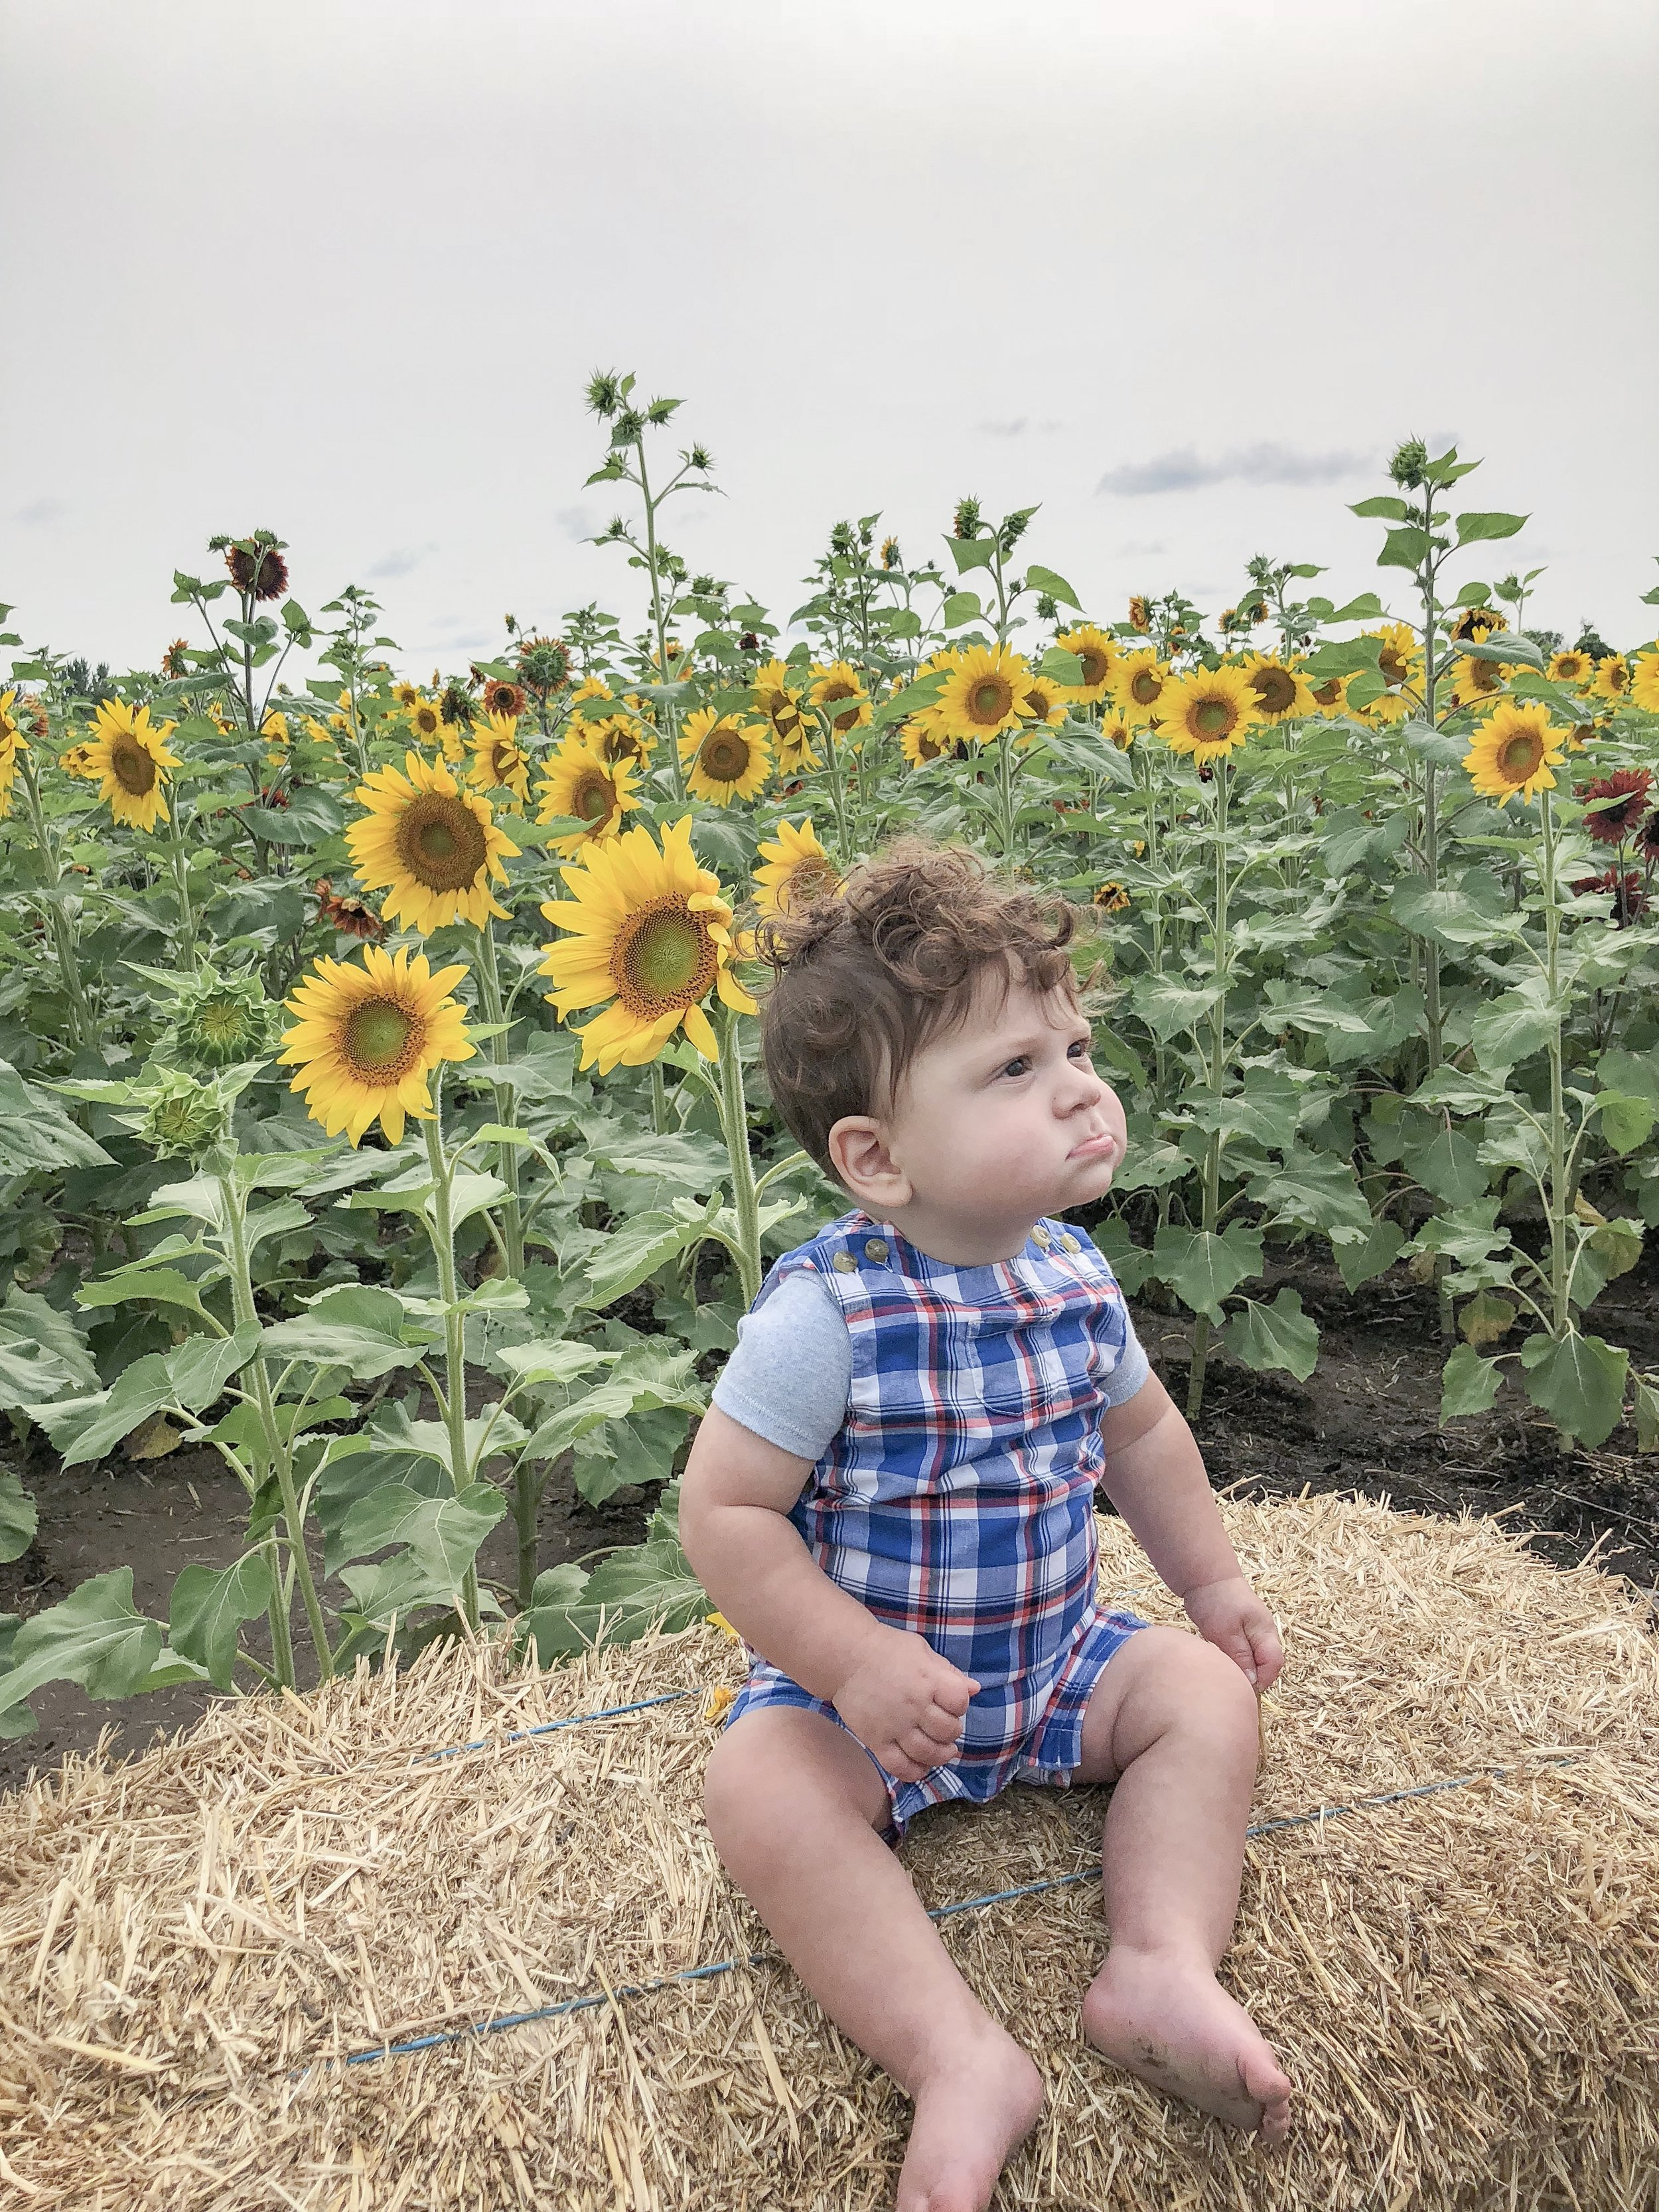 Dominic sitting in the sunflowers